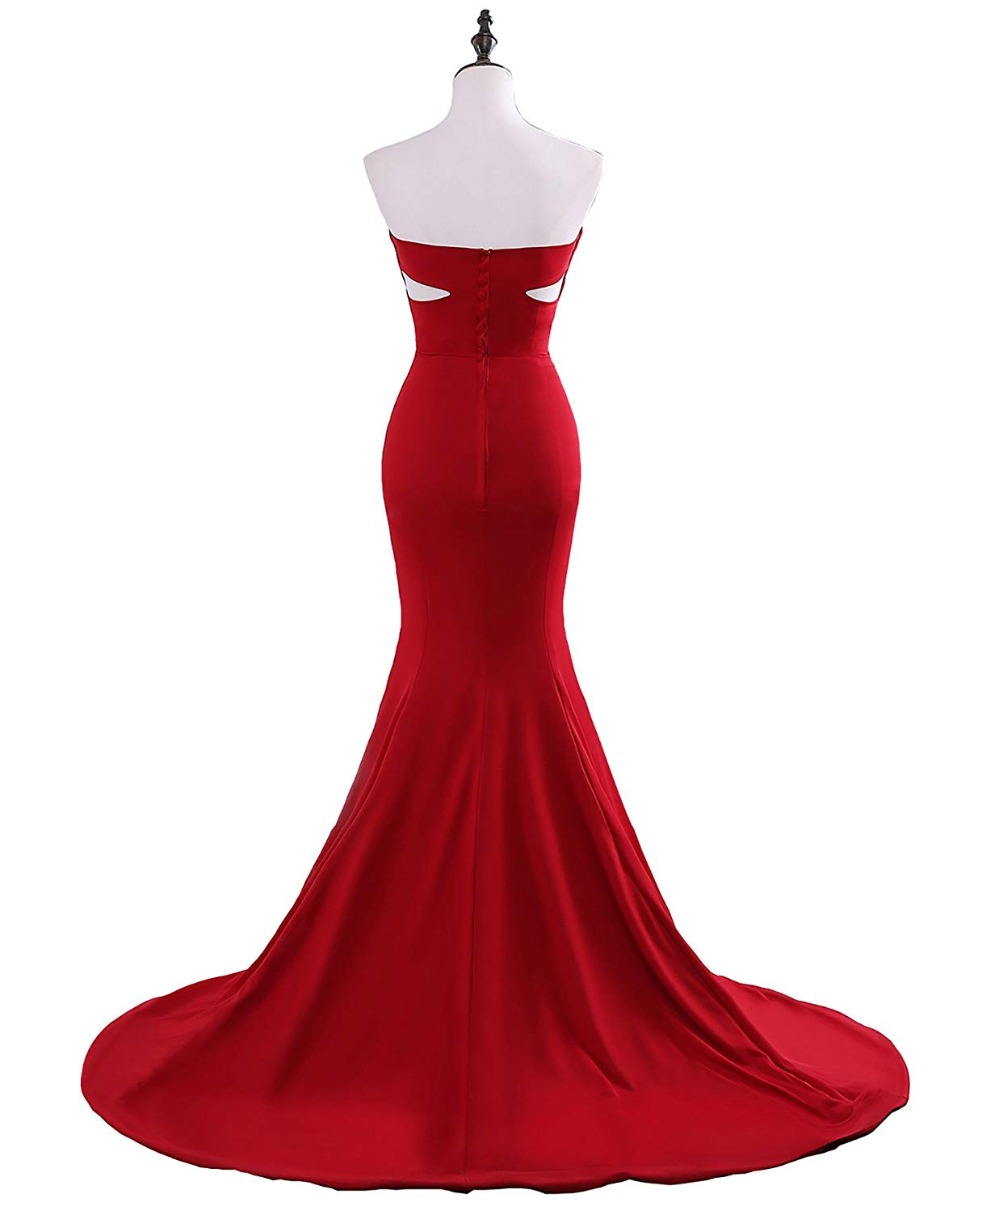 JaneVini Arabic Red Mermaid Party Dress 2018 Sweetheart Long Cut Out Bridesmaid Dresses Sexy Dubai Ladies Button Formal Gown - 4